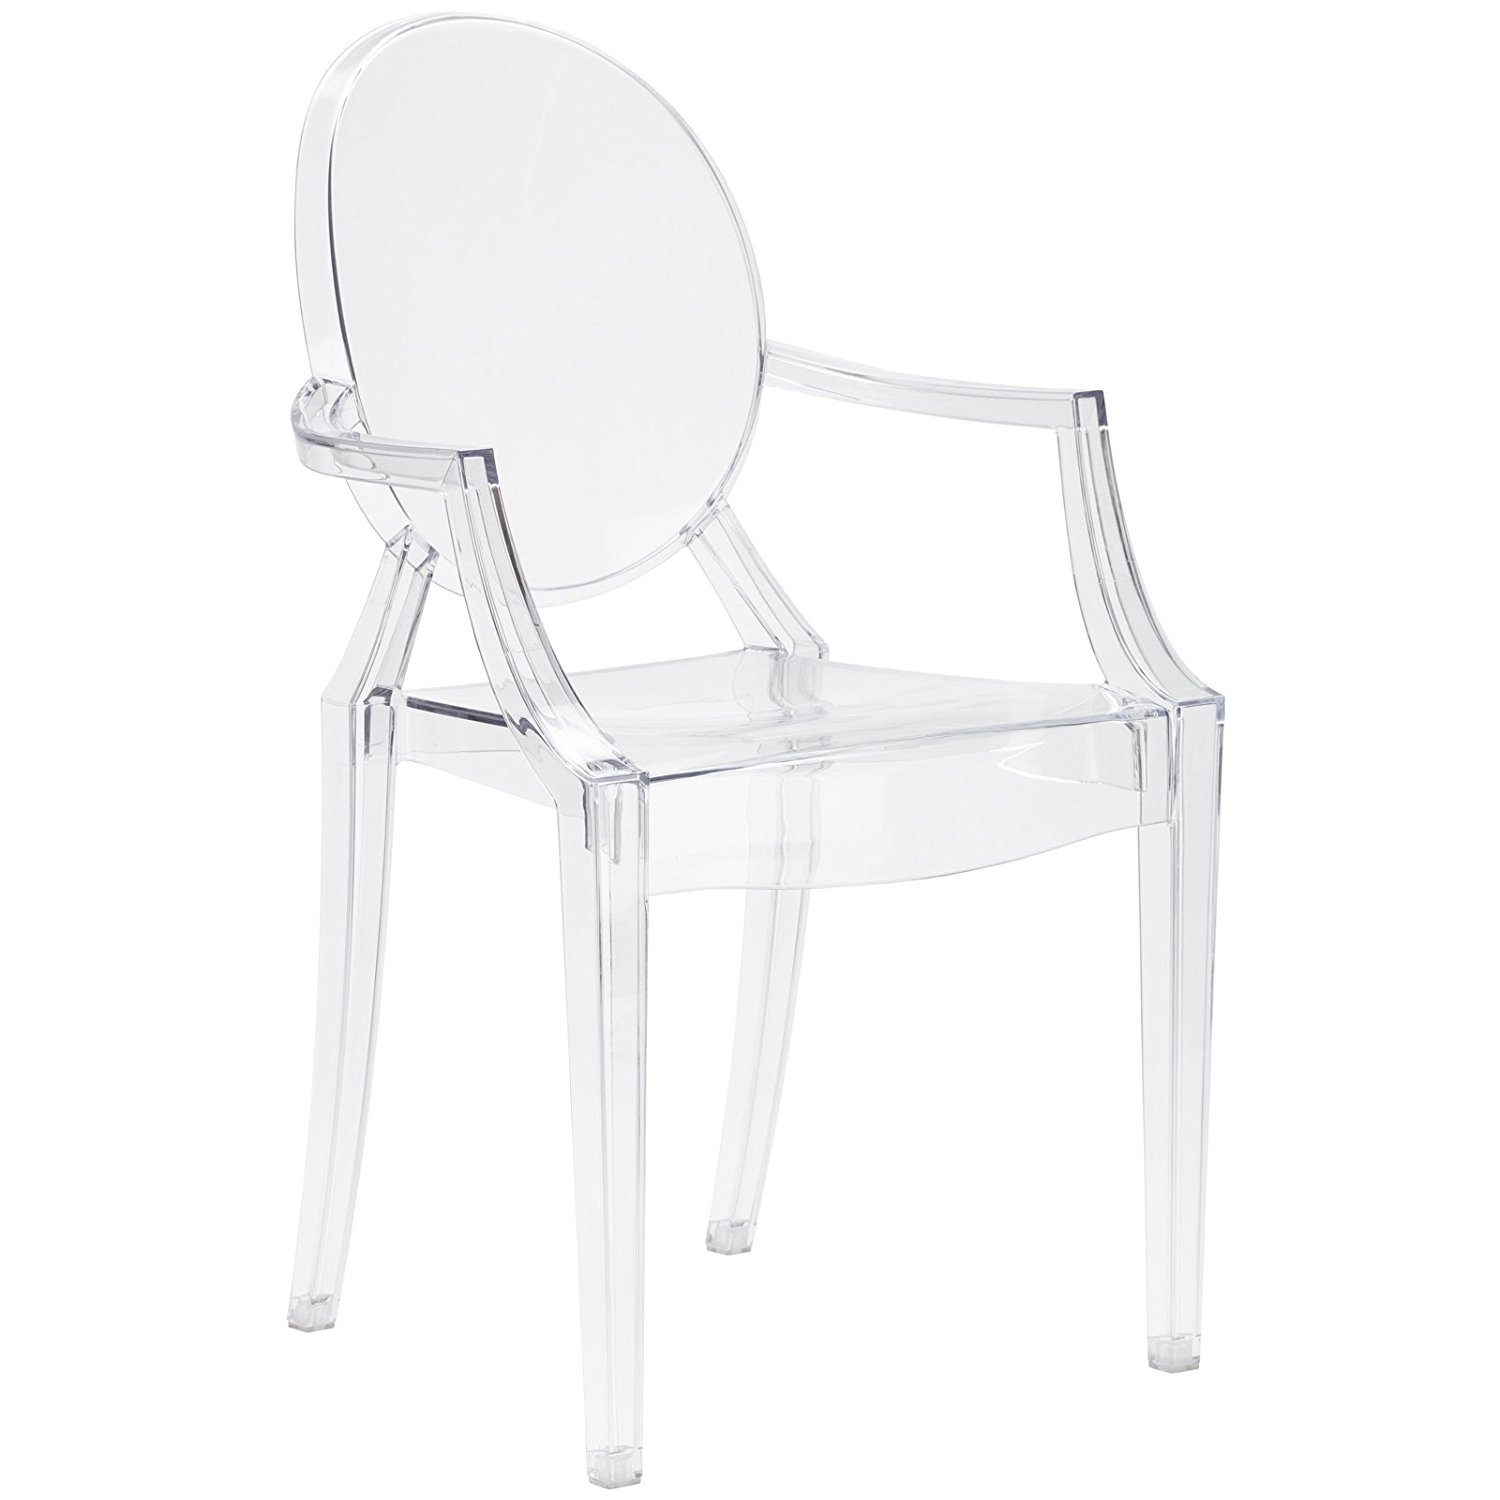 Poly and Bark Louis Ghost Style Arm Chair, Clear - Plastic Chairs